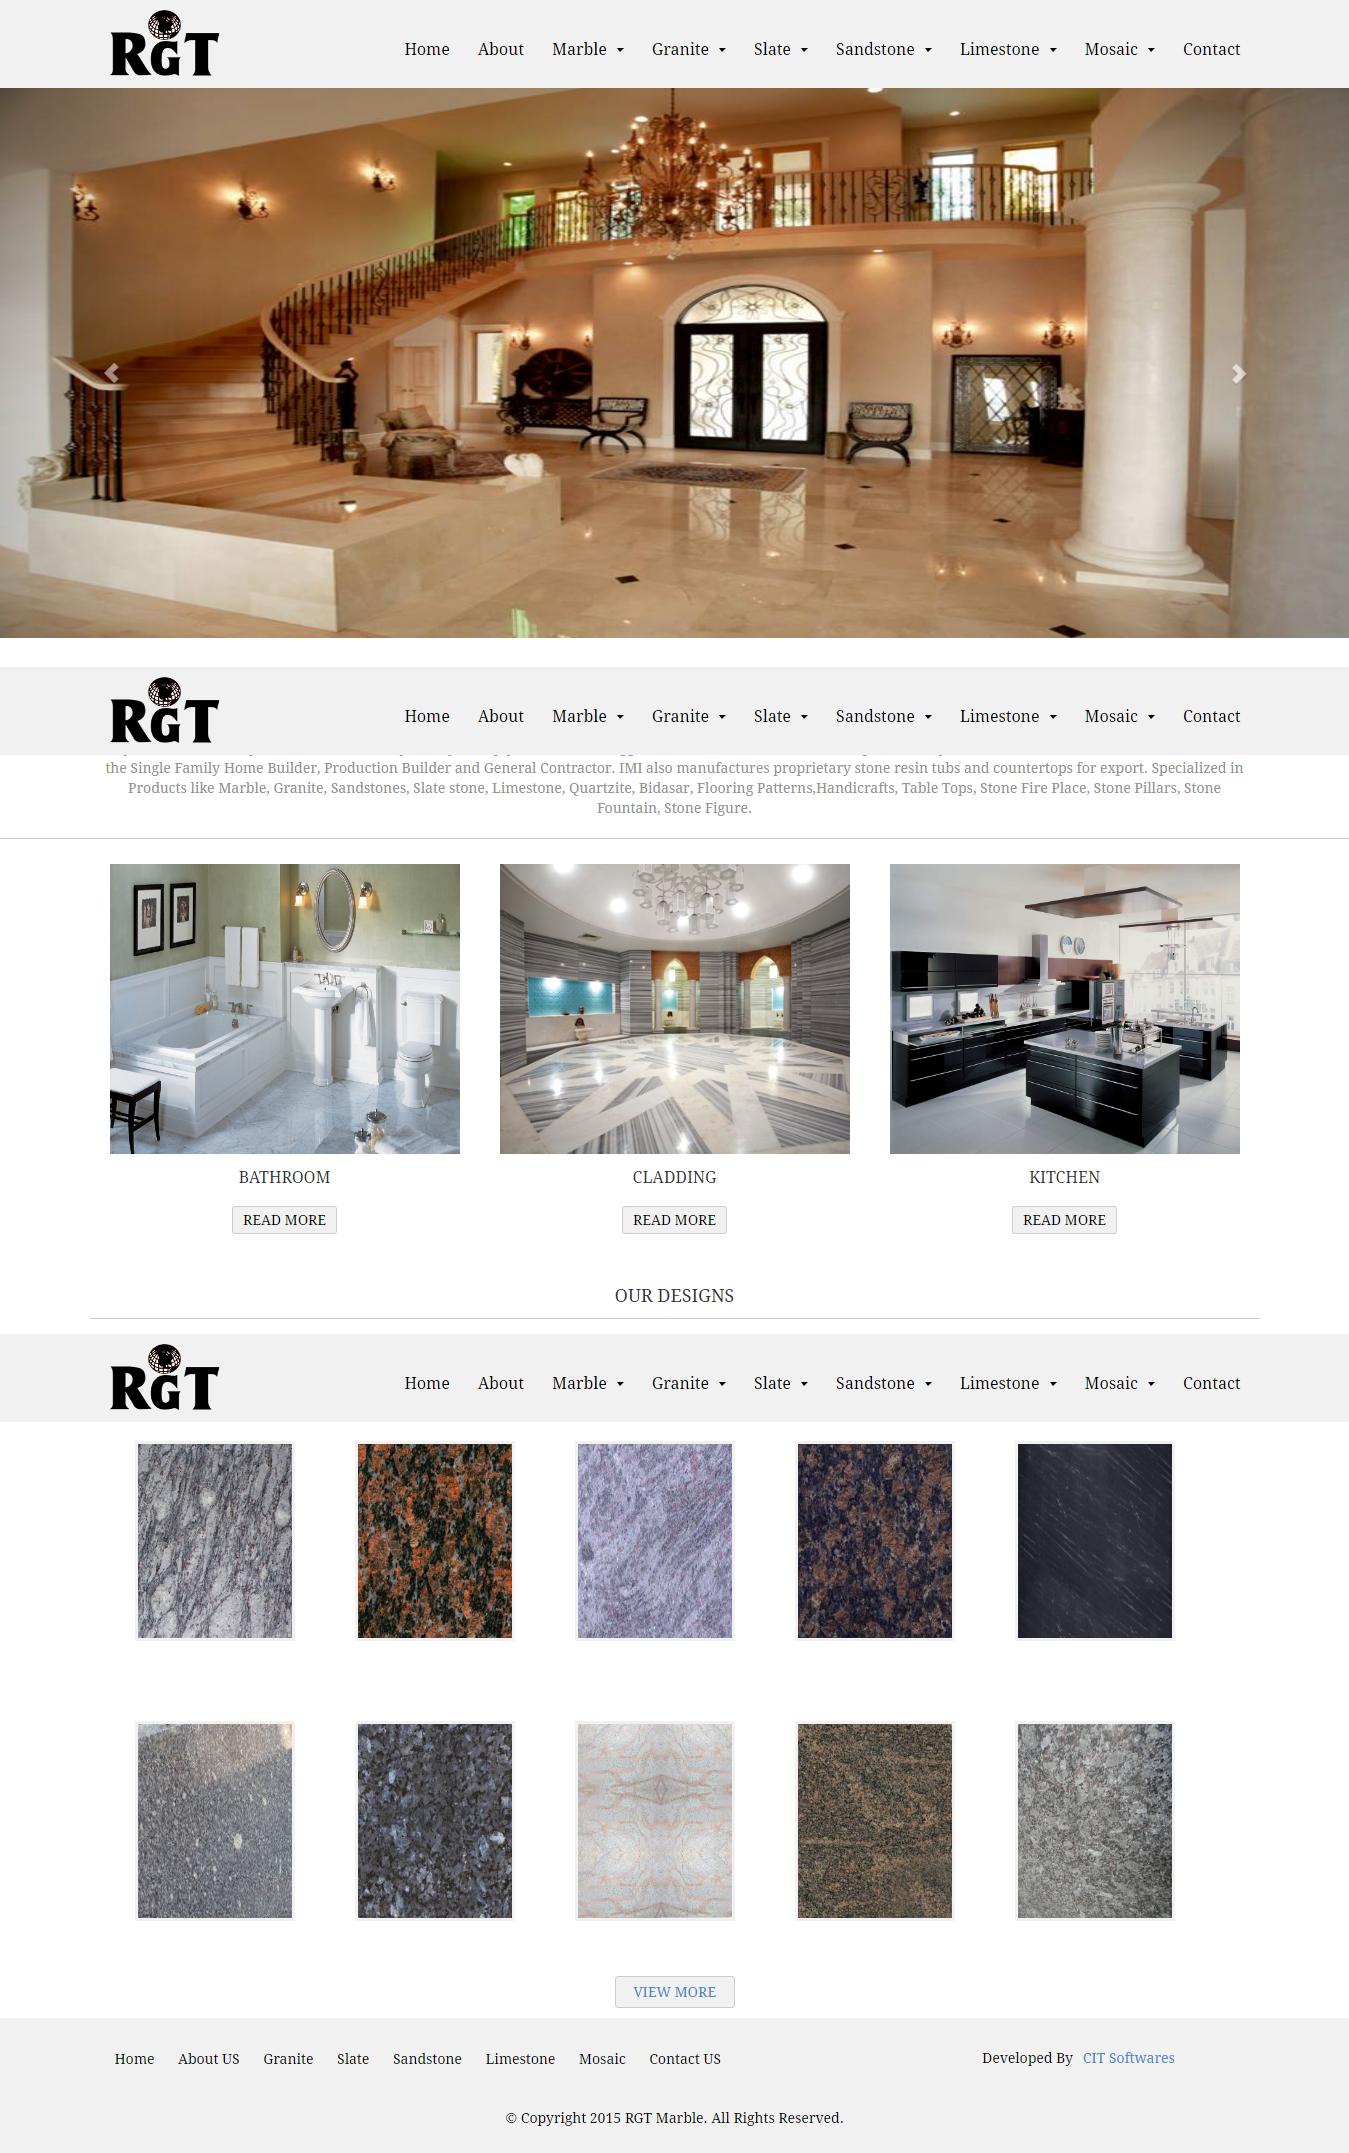 Website design and development for Marble Company